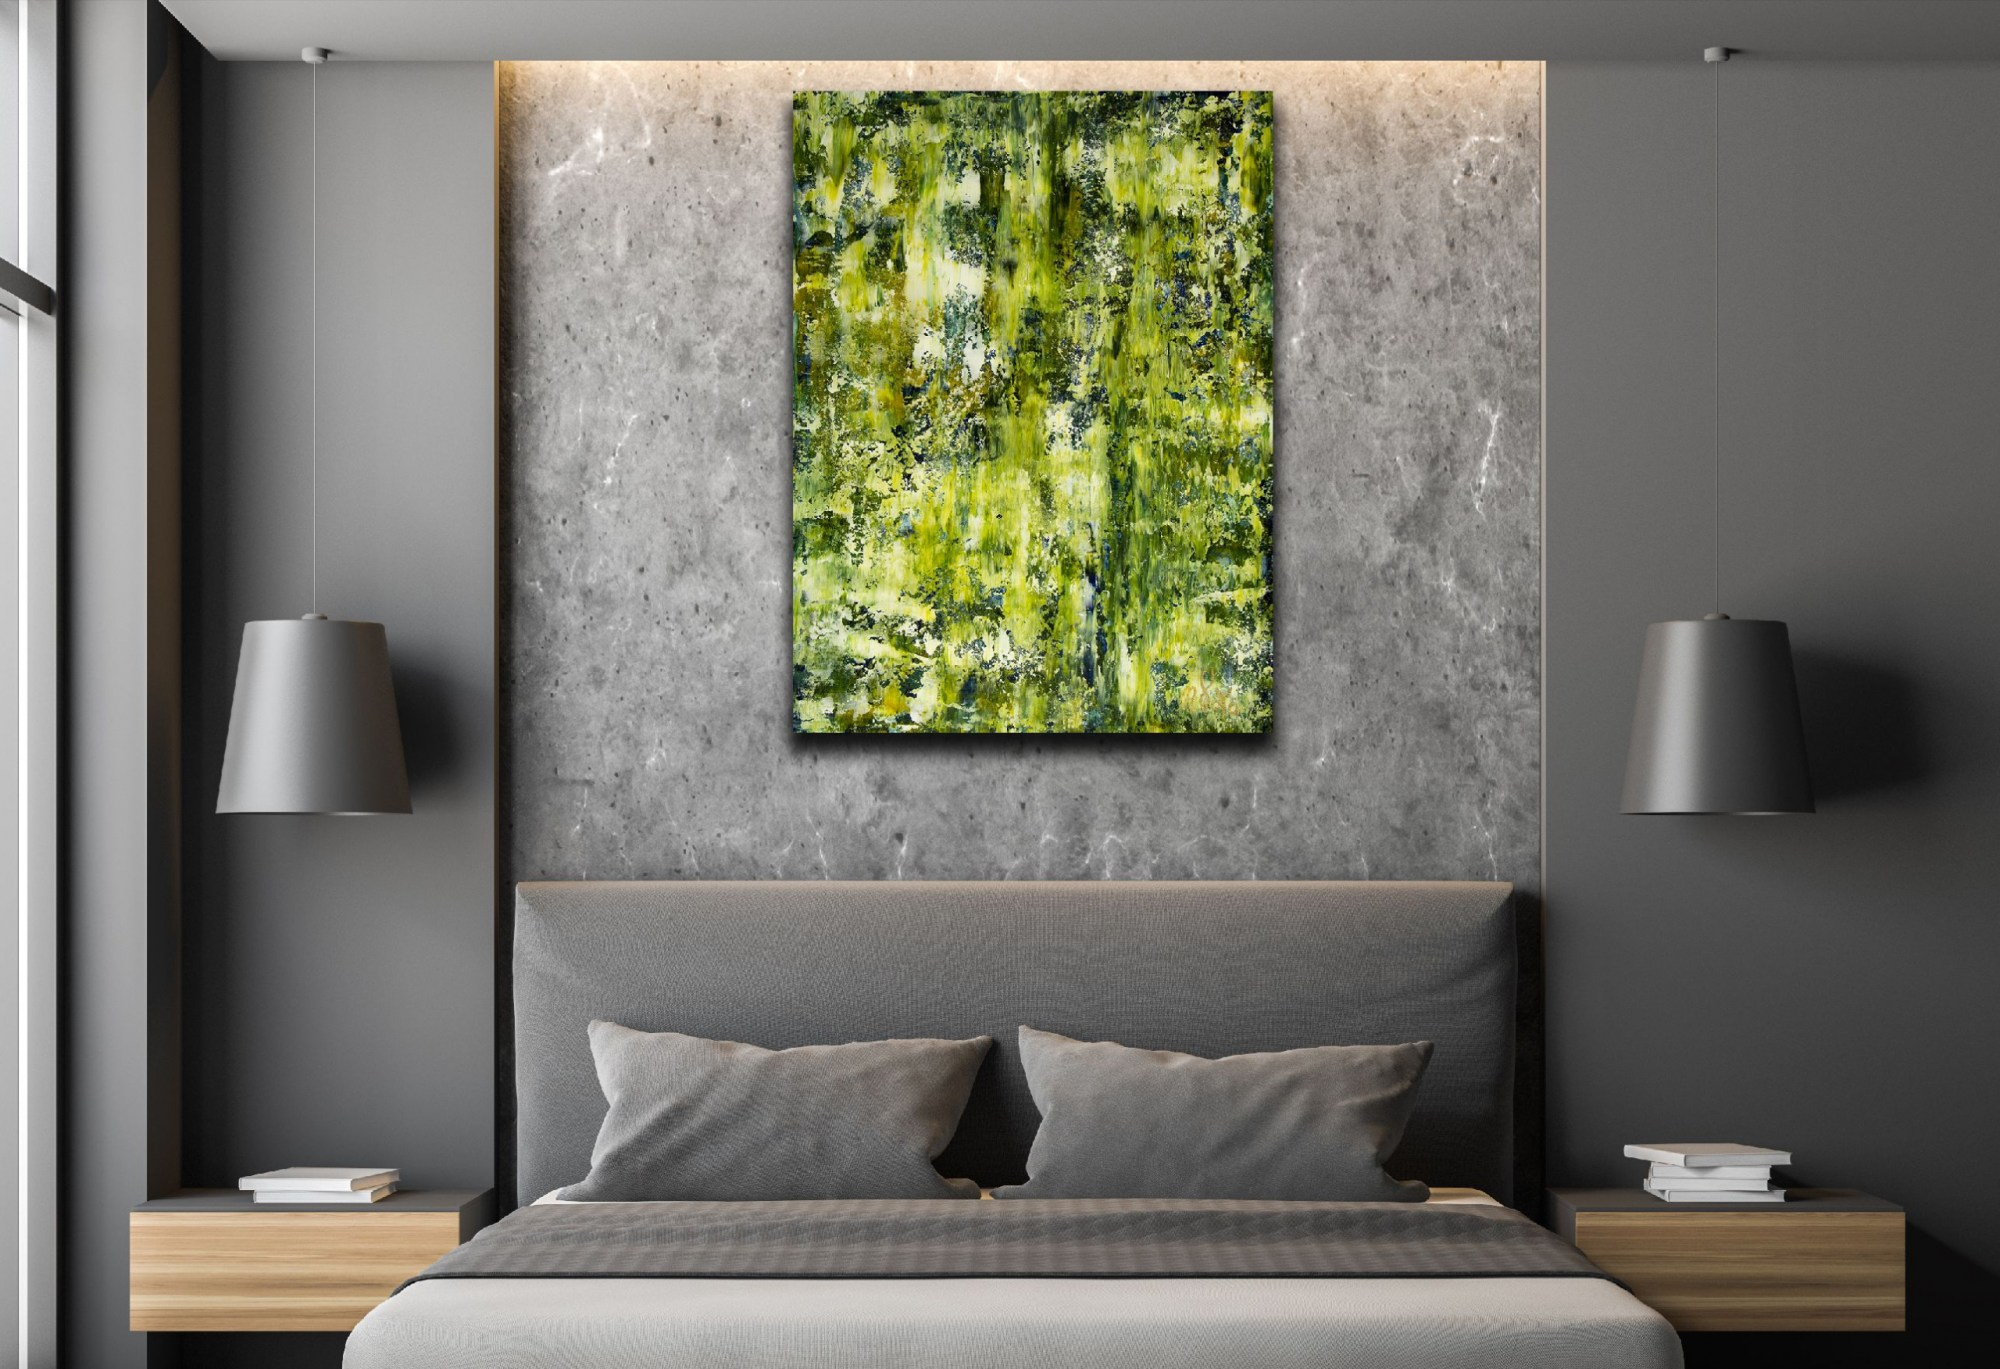 Room example - Forest and Light Trails (2021) by Nestor Toro